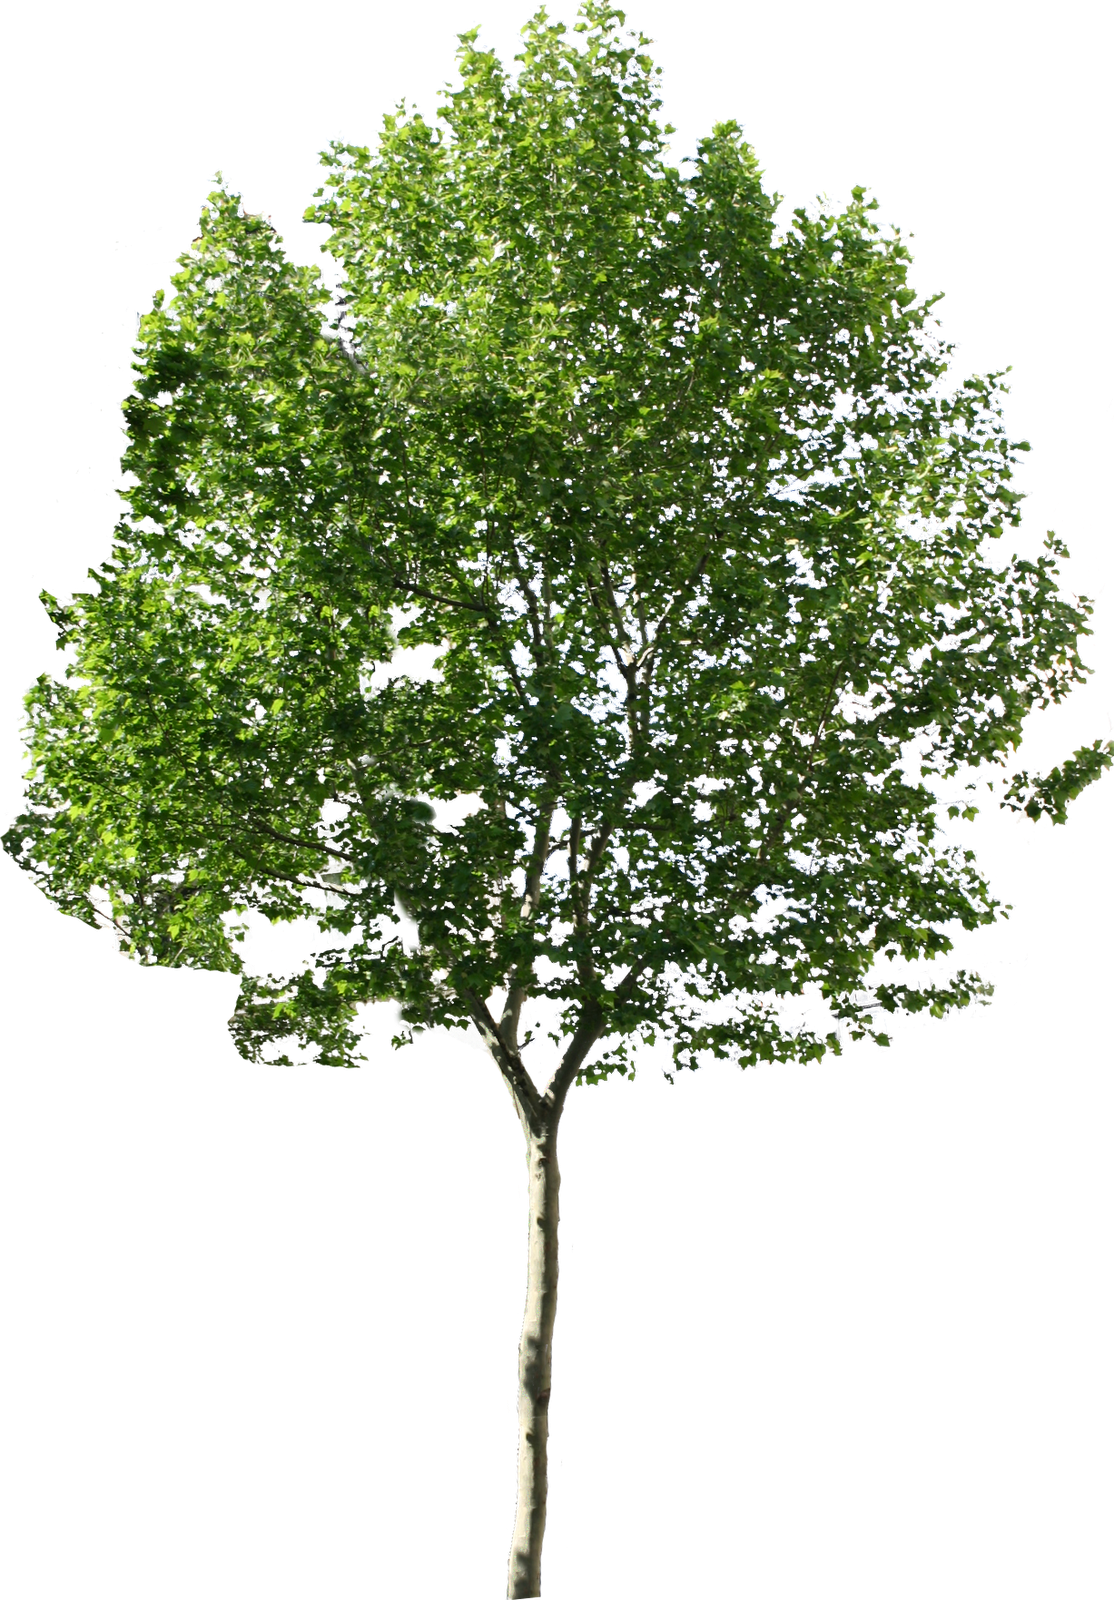 Tree PNG Images Quality Transparent Pictures.